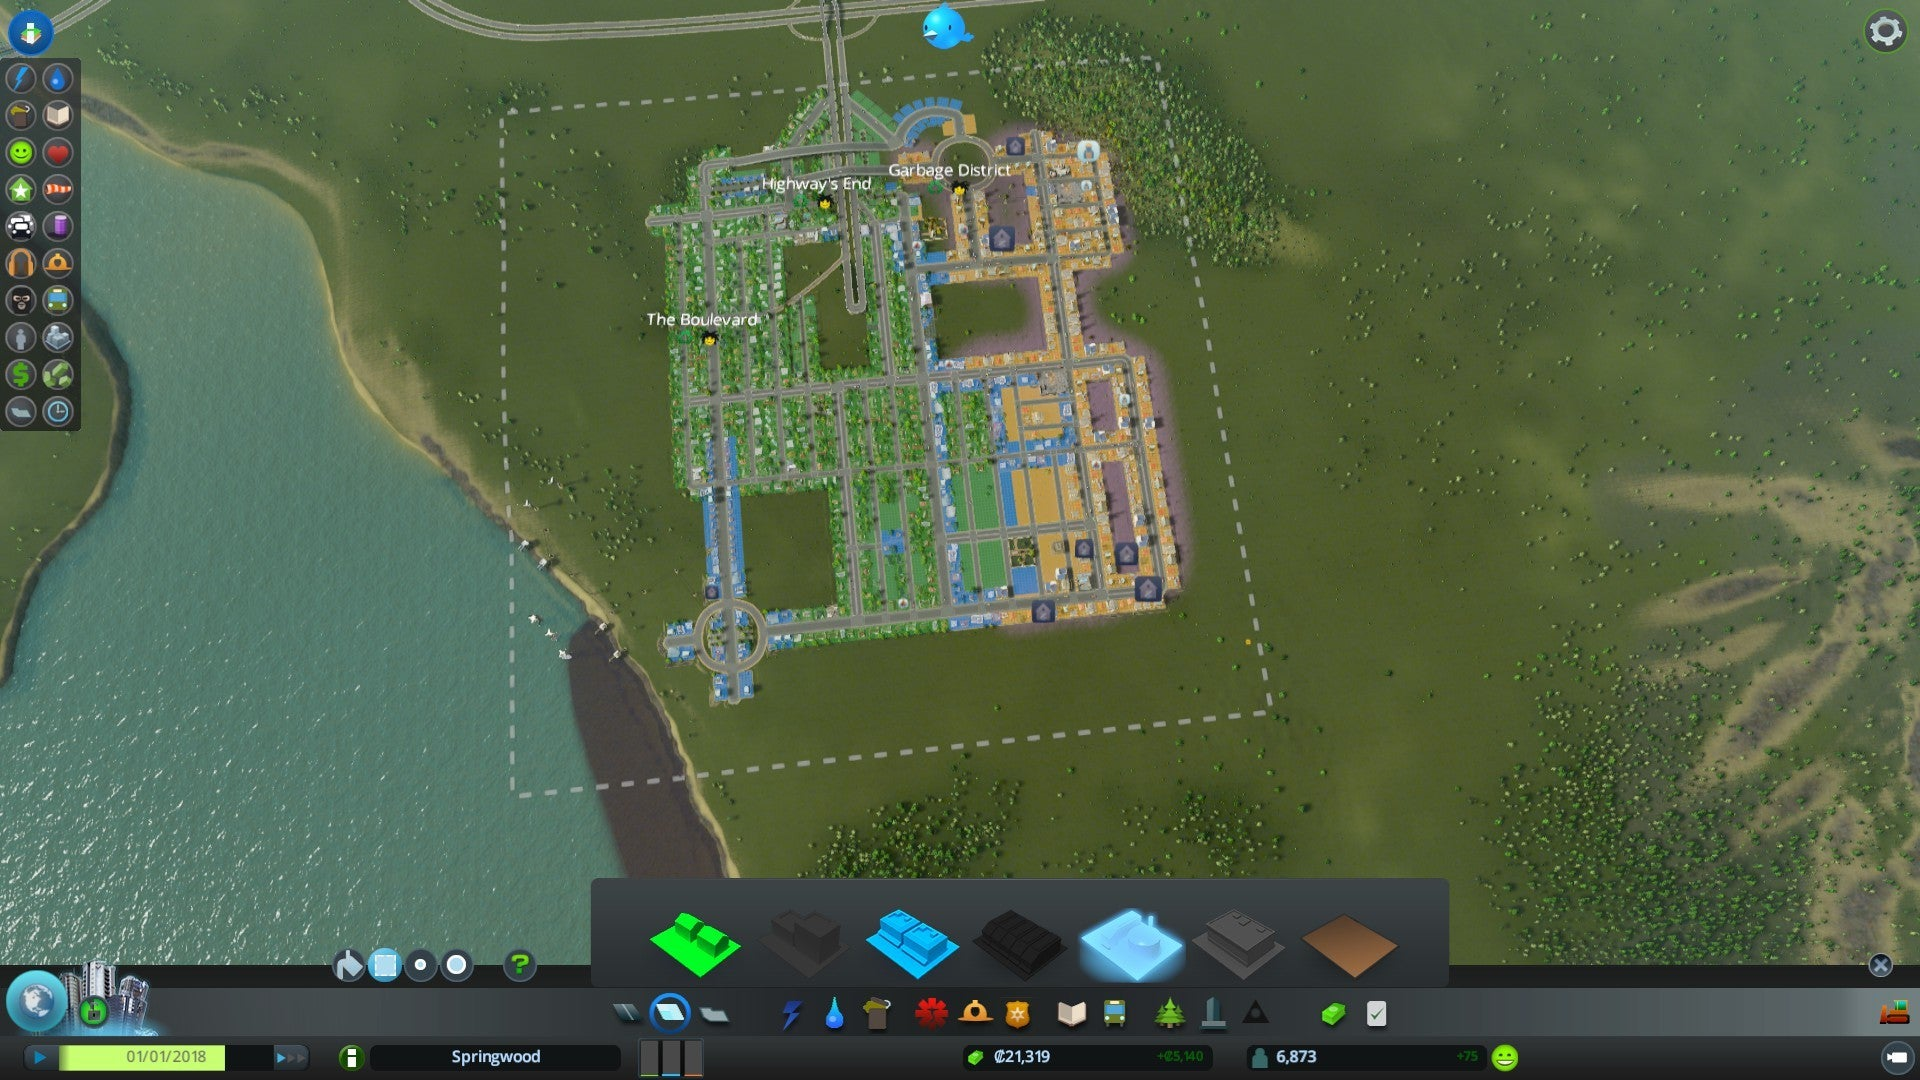 Cities skylines review this is the simcity you were looking for cities skylines im particularly fond of the garbage district which is full of landfills and incinerators so many incinerators gumiabroncs Gallery